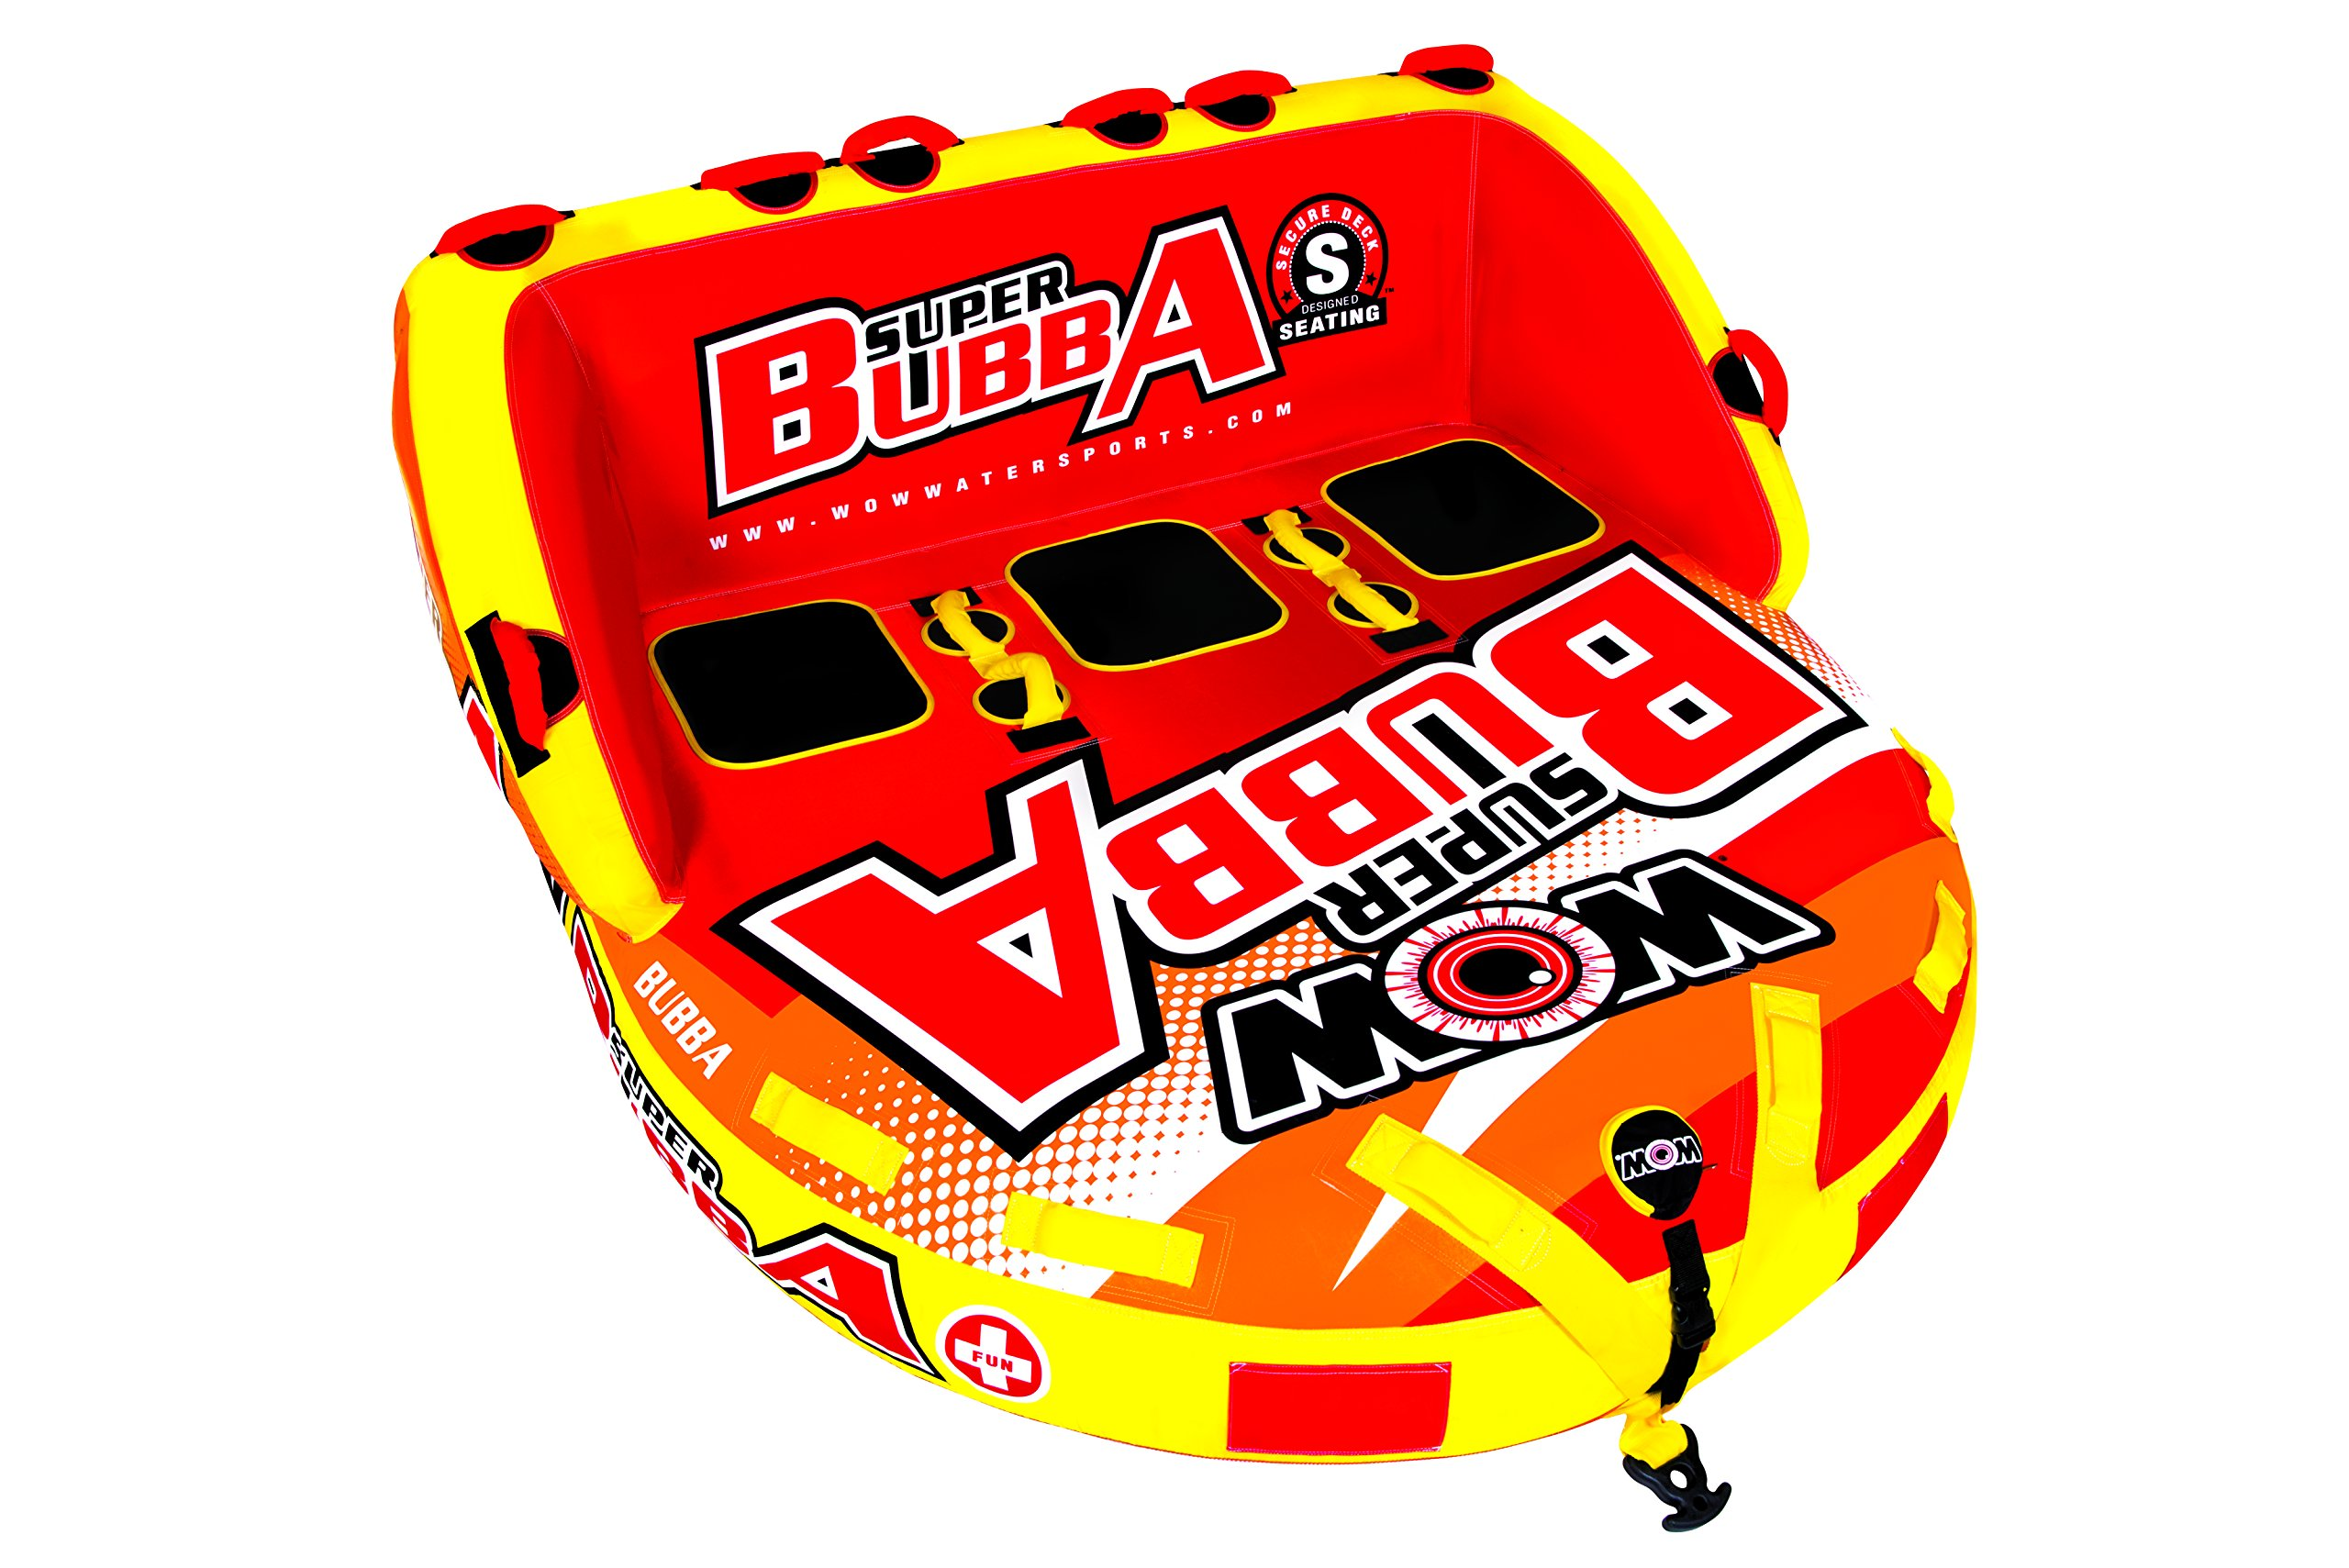 WOW World of Watersports, Big Bubba Hi Visibility Towable Tube Deck Seat, Front and Back Tow Points, 1-3 Riders by WOW Sports